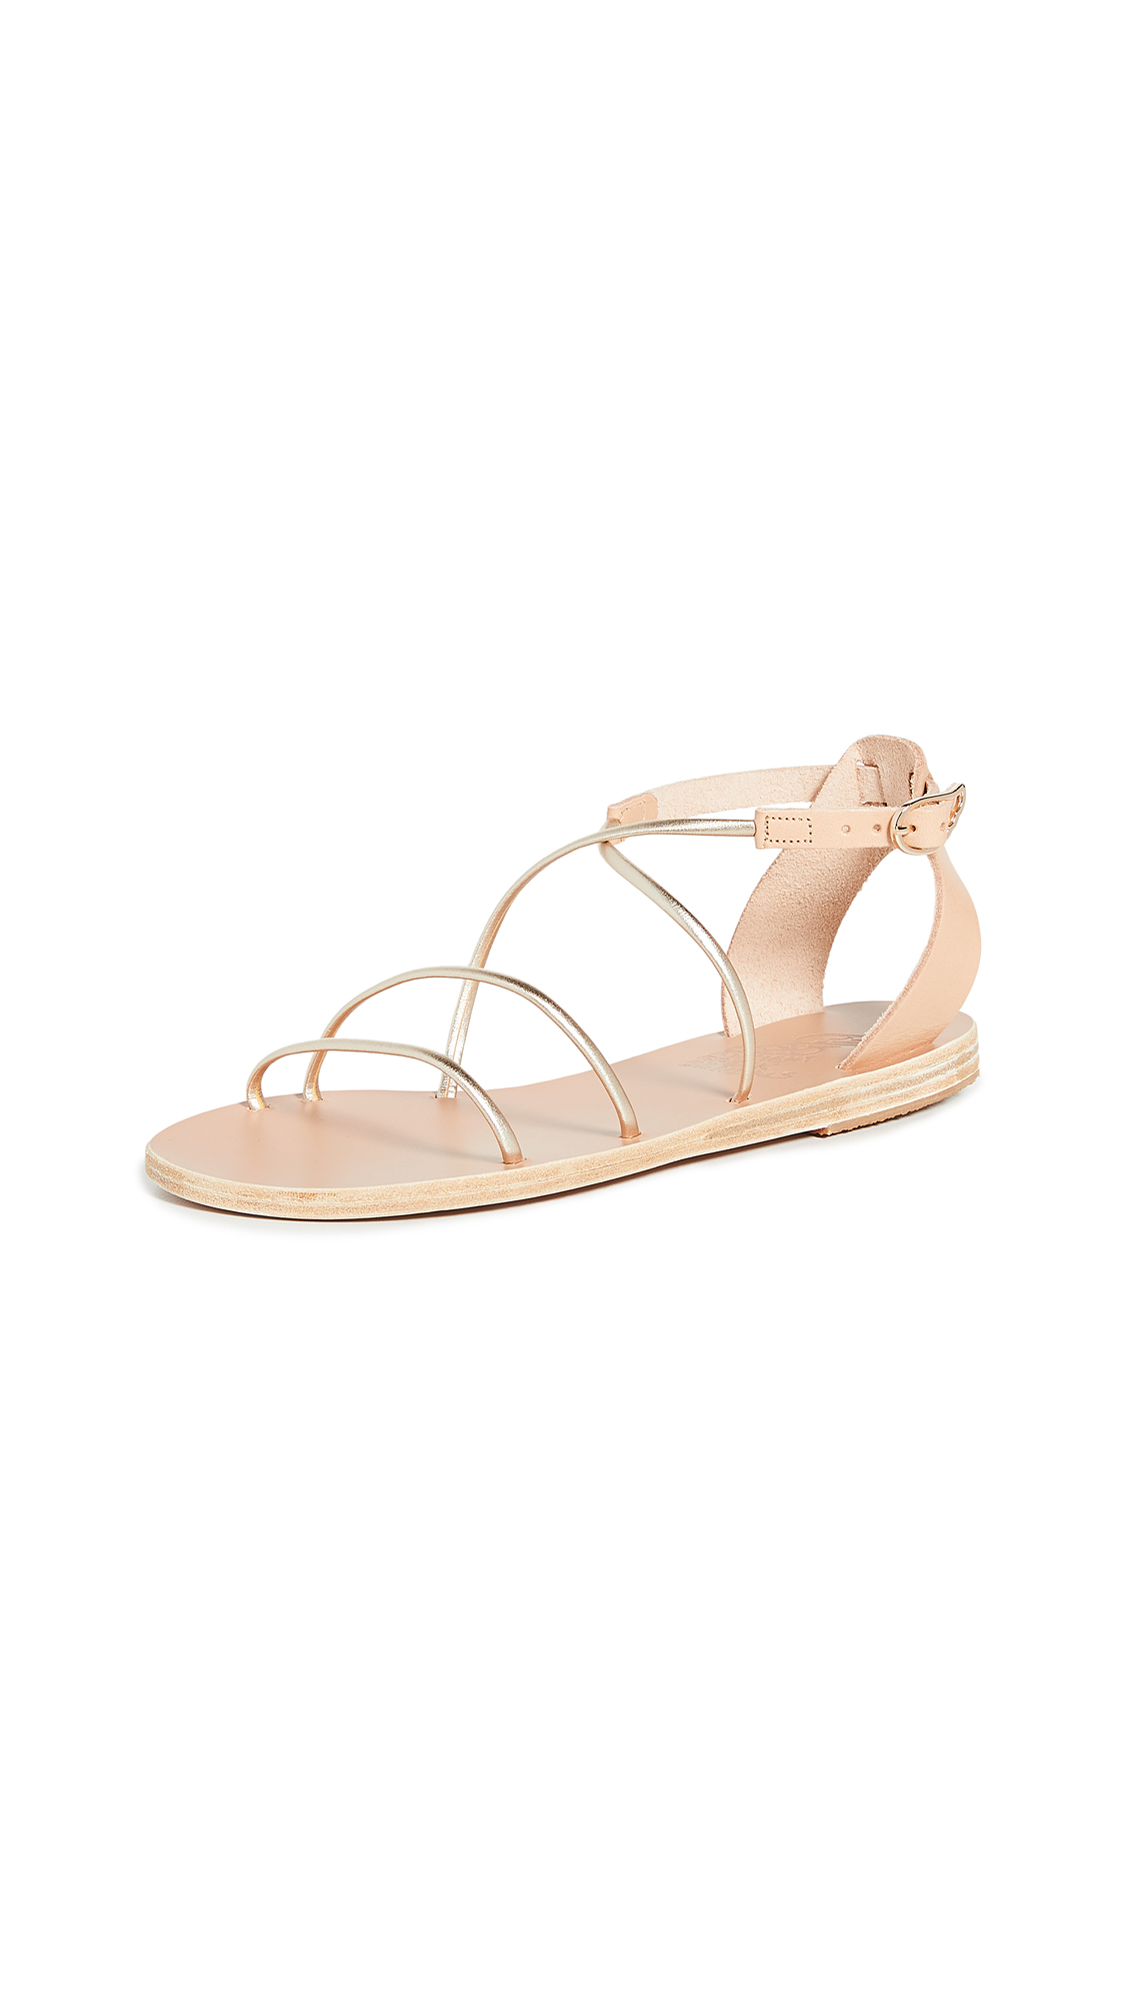 Buy Ancient Greek Sandals Melovia Sandals online, shop Ancient Greek Sandals